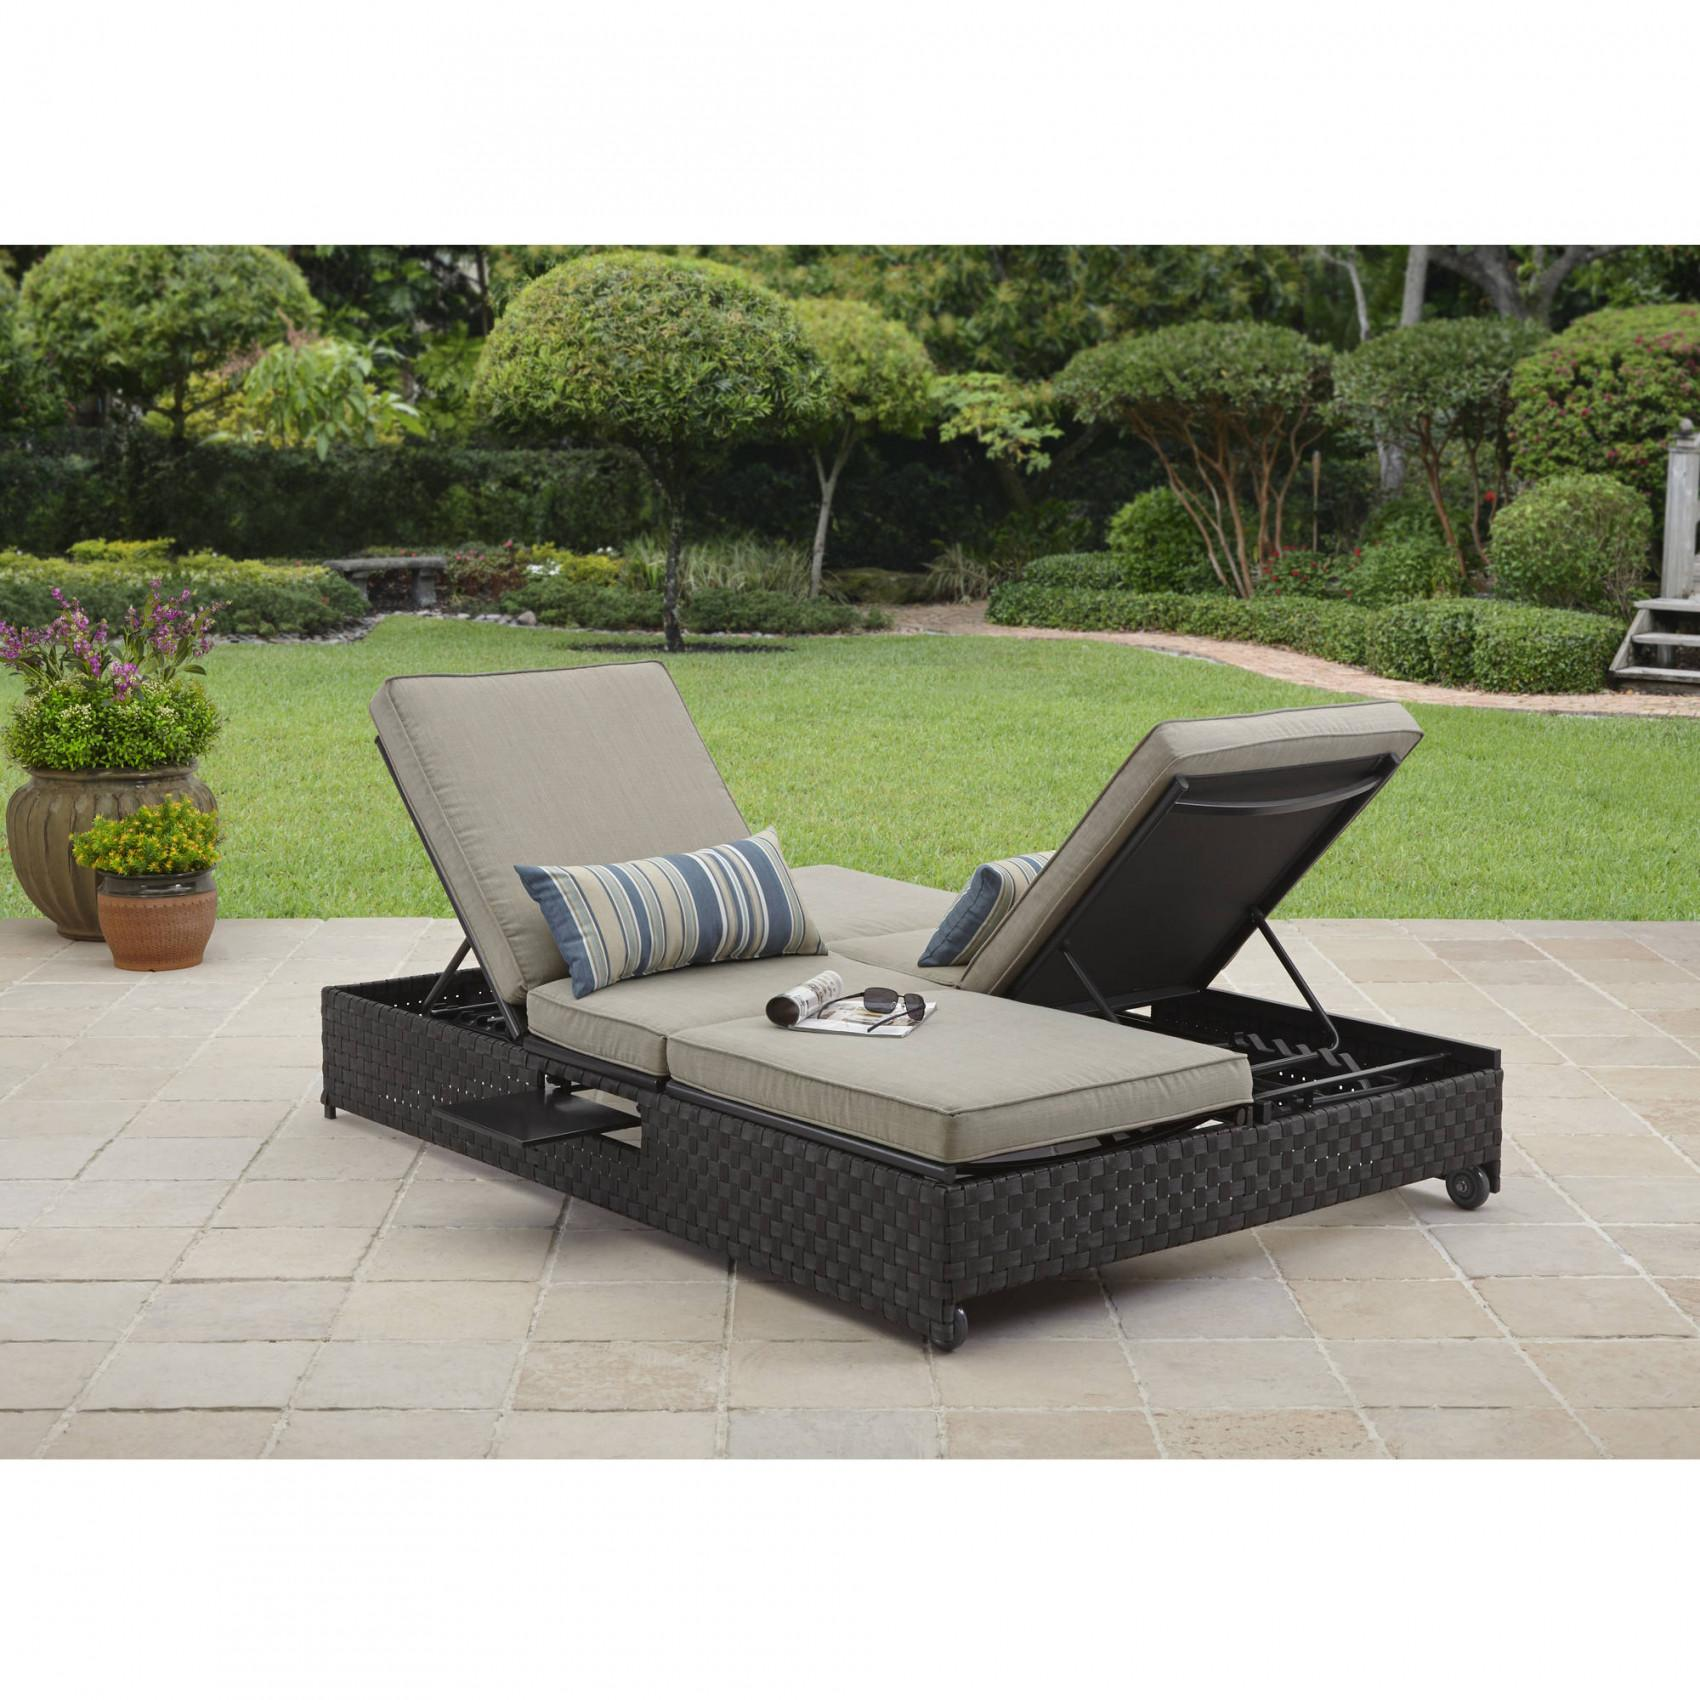 Outdoor Double Lounge Furniture